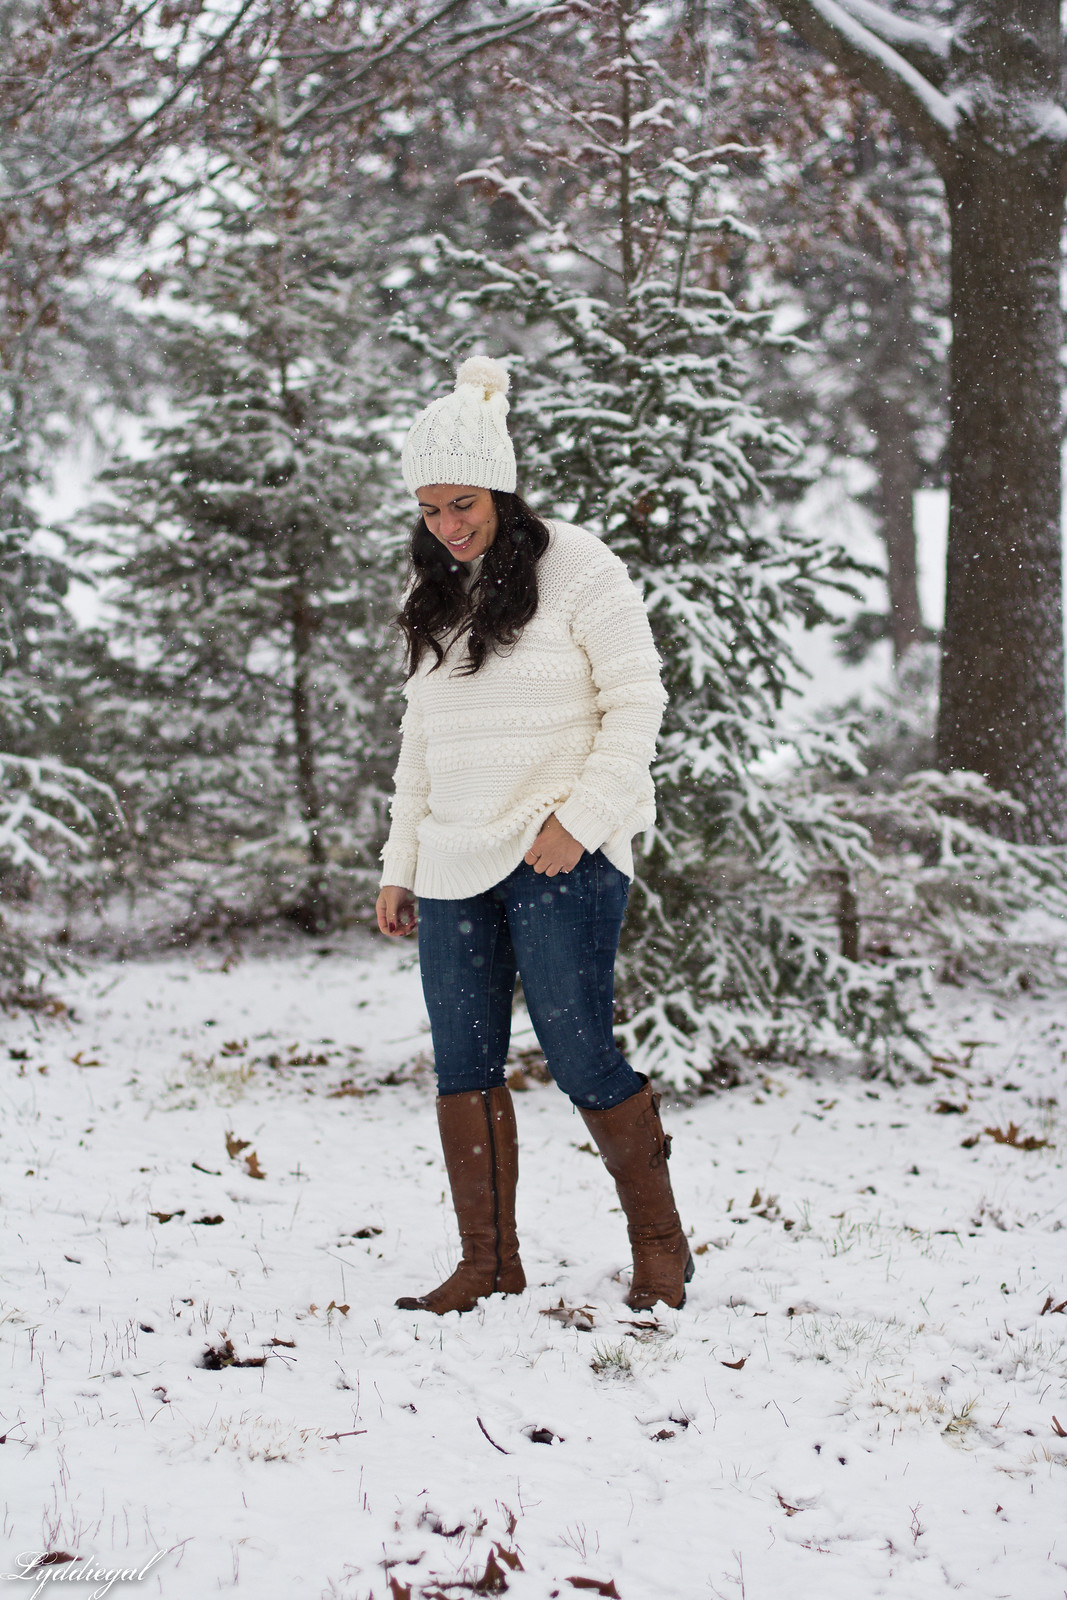 loft white sweater, brown leather boots, pom pom hat, tree hunt outfit-12.jpg